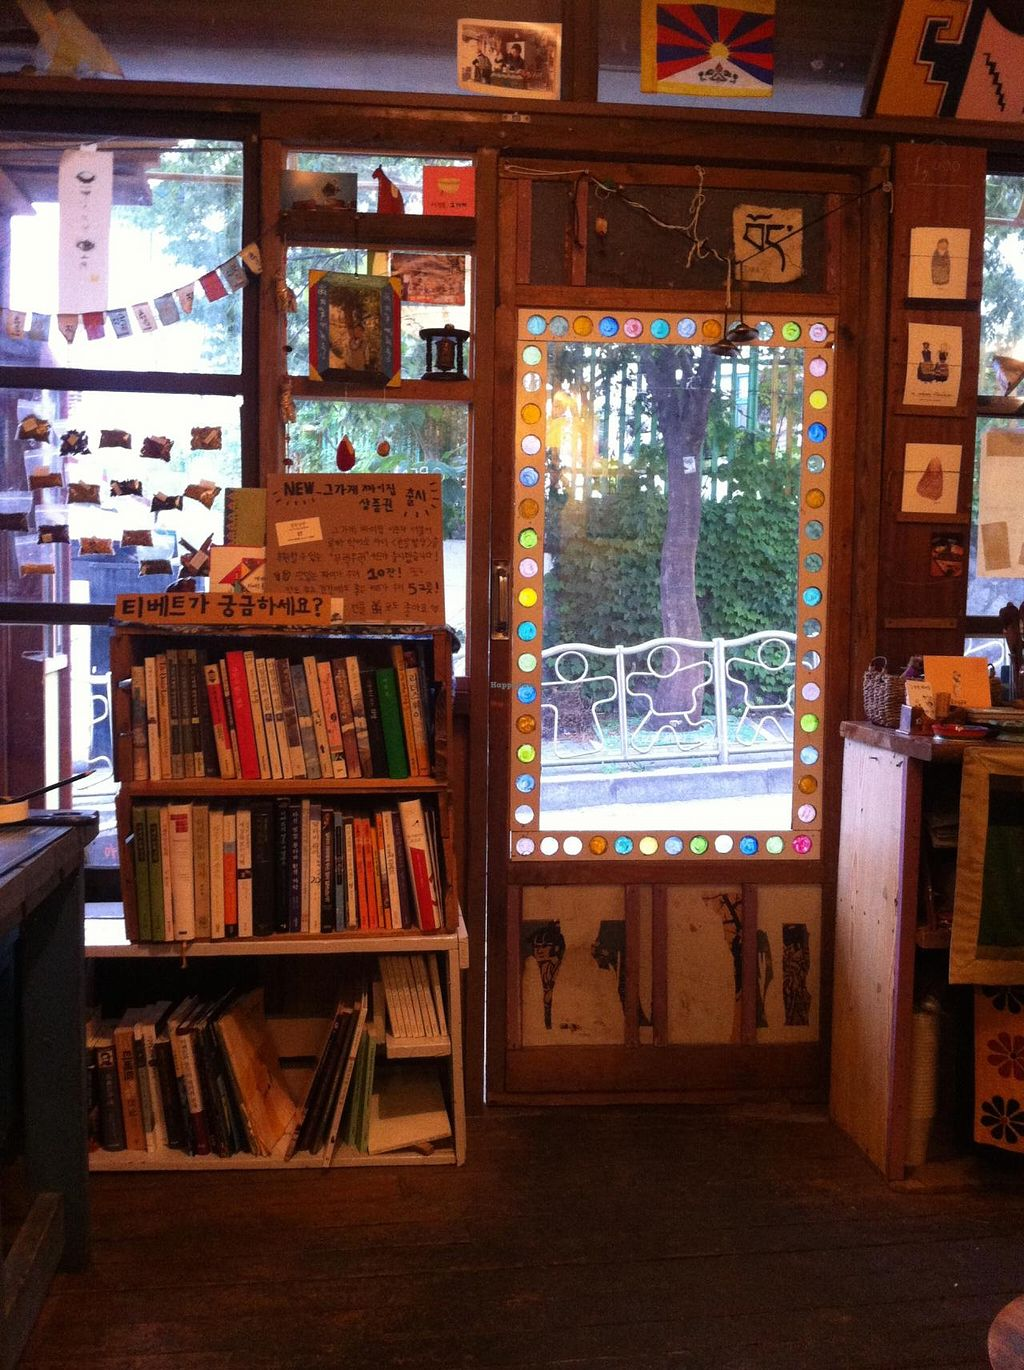 """Photo of The Store Sajik-dong - 사직동 그 가게  by <a href=""""/members/profile/andrea.linnea"""">andrea.linnea</a> <br/>Cozy atmosphere! <br/> July 21, 2015  - <a href='/contact/abuse/image/54509/110383'>Report</a>"""